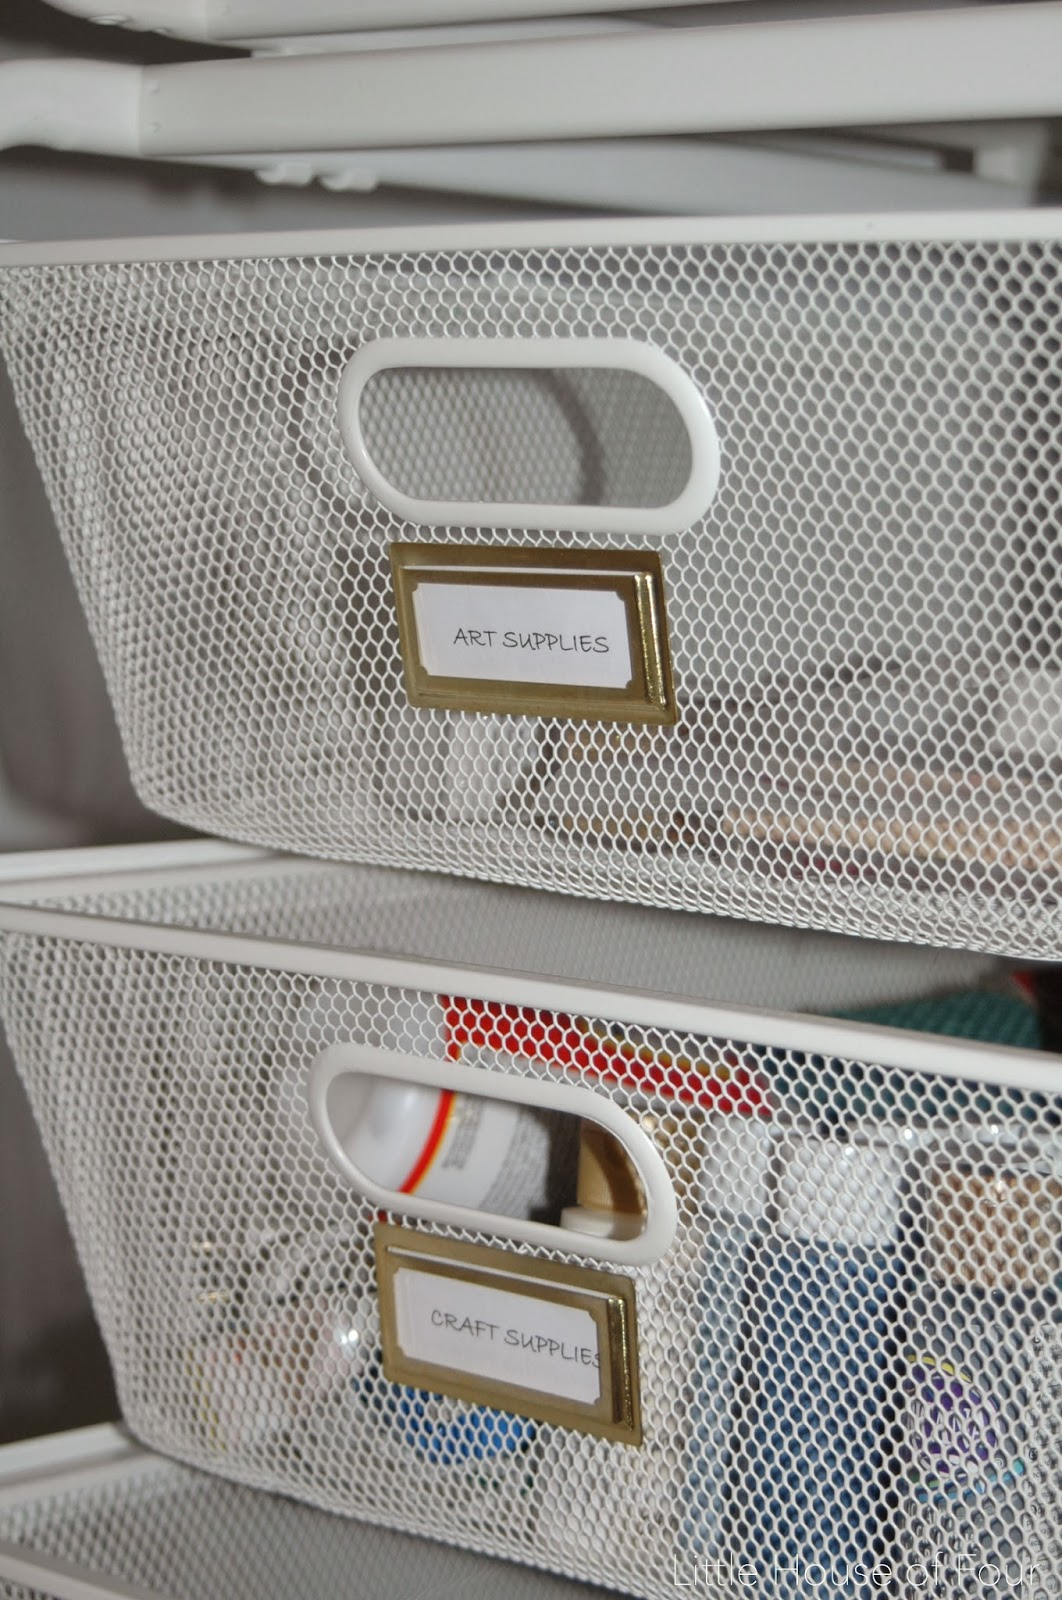 Labels on Ikea's Algot system